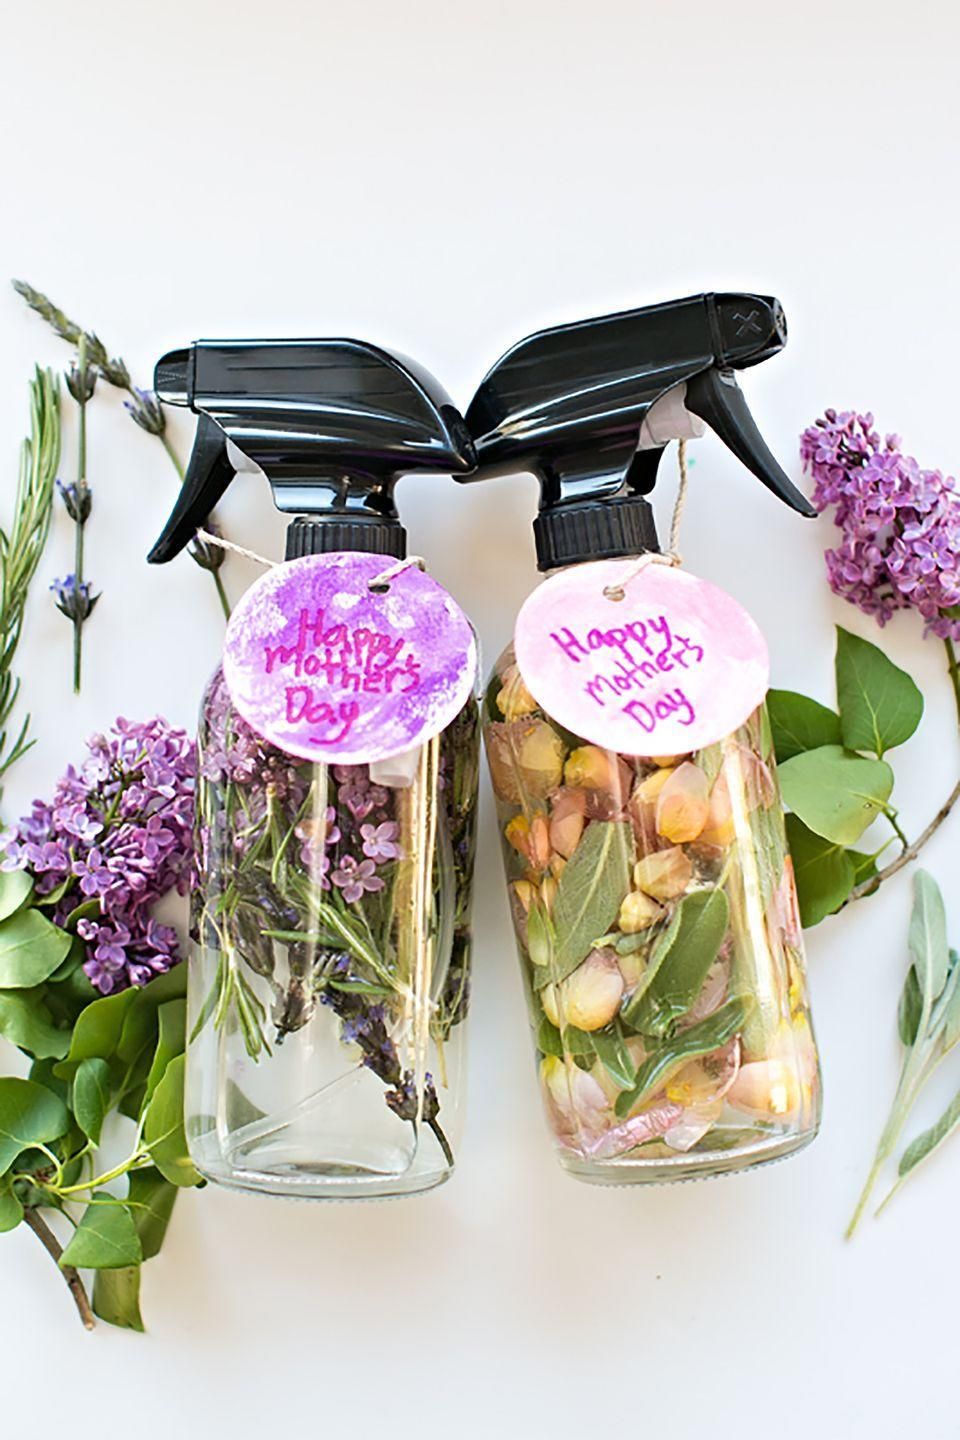 """<p>Made with water, essential oils, and assorted flowers and herbs, these fragrant """"perfumes"""" won't last more than a few days, but they make for fun gifts. This blogger and her daughter made one with rose and sage, and another with lavender, lilac, and rosemary.</p><p><strong>Get the tutorial at <a href=""""http://www.hellowonderful.co/post/KID-MADE-DIY-MOTHER----S-DAY-FLORAL-HERB-PERFUME#_a5y_p=5283056"""" rel=""""nofollow noopener"""" target=""""_blank"""" data-ylk=""""slk:Hello, Wonderful"""" class=""""link rapid-noclick-resp"""">Hello, Wonderful</a>. </strong></p>"""